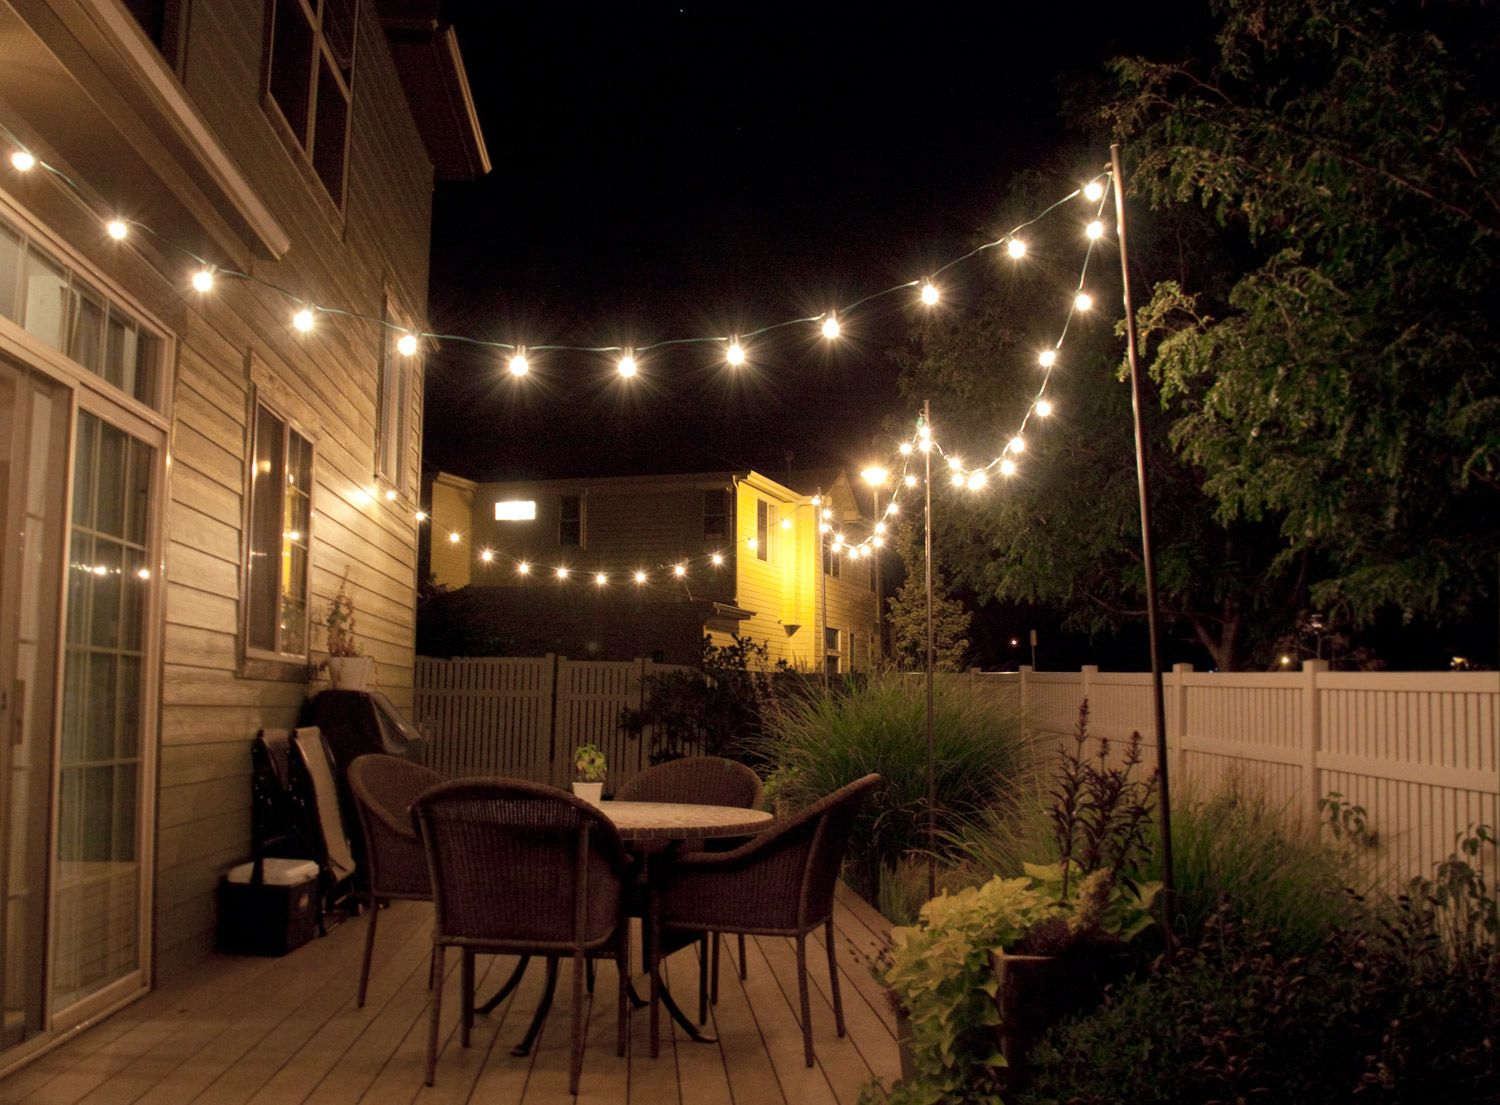 Outdoor String Lighting Ideas Entrancing How To Make Inexpensive Poles To Hang String Lights On  Café Style